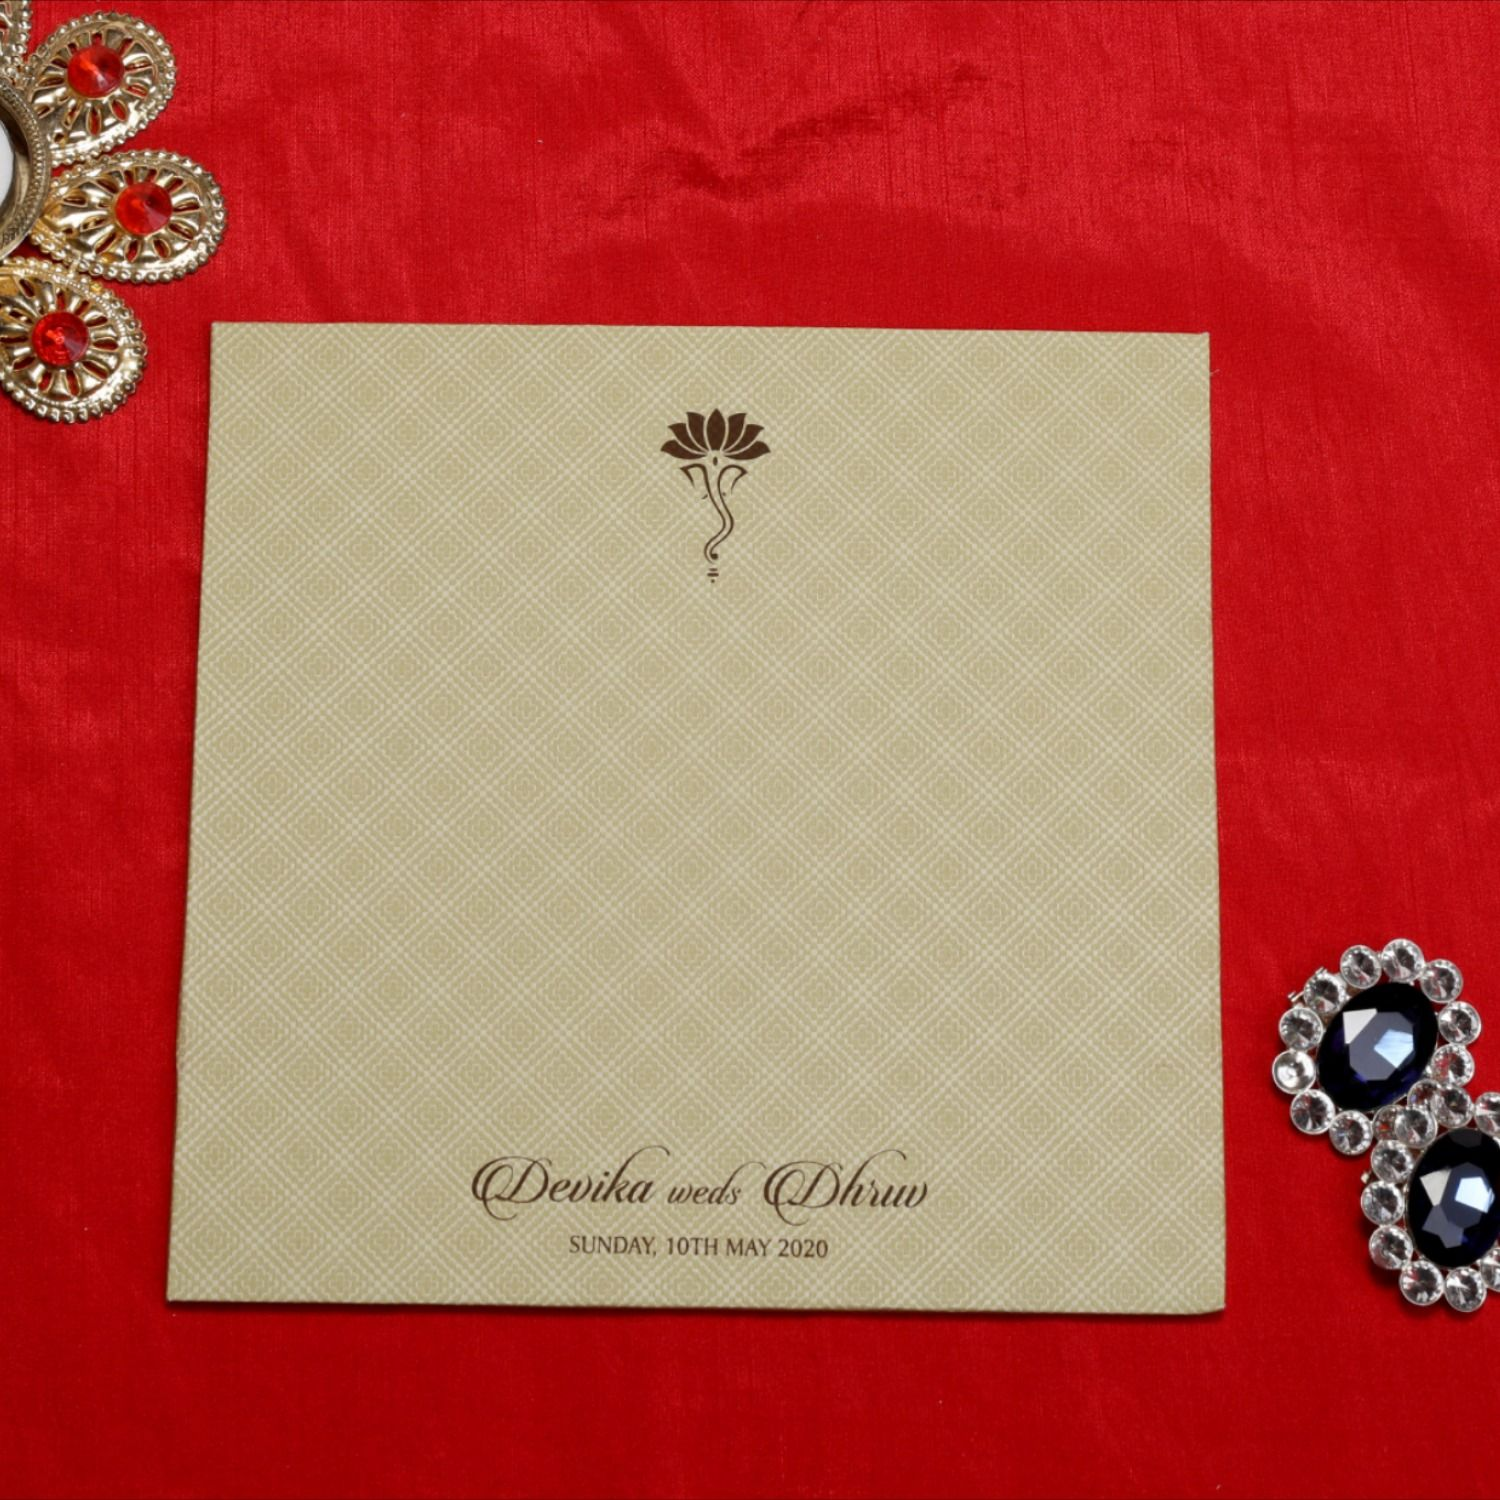 #CustomizedWeddingCards Online, Print #WeddingInvitationCards. Buy Custom #MarriageCards with Photo & Text Printed Online in #Bangalore, India. Check out Wedding Cards with us.  #WeddingCards #Cards #WeddingInvitation #Invitation #OnlineInvitation #Love #Wedding #WeddingInvite #WeddingCard #WeddingInspiration